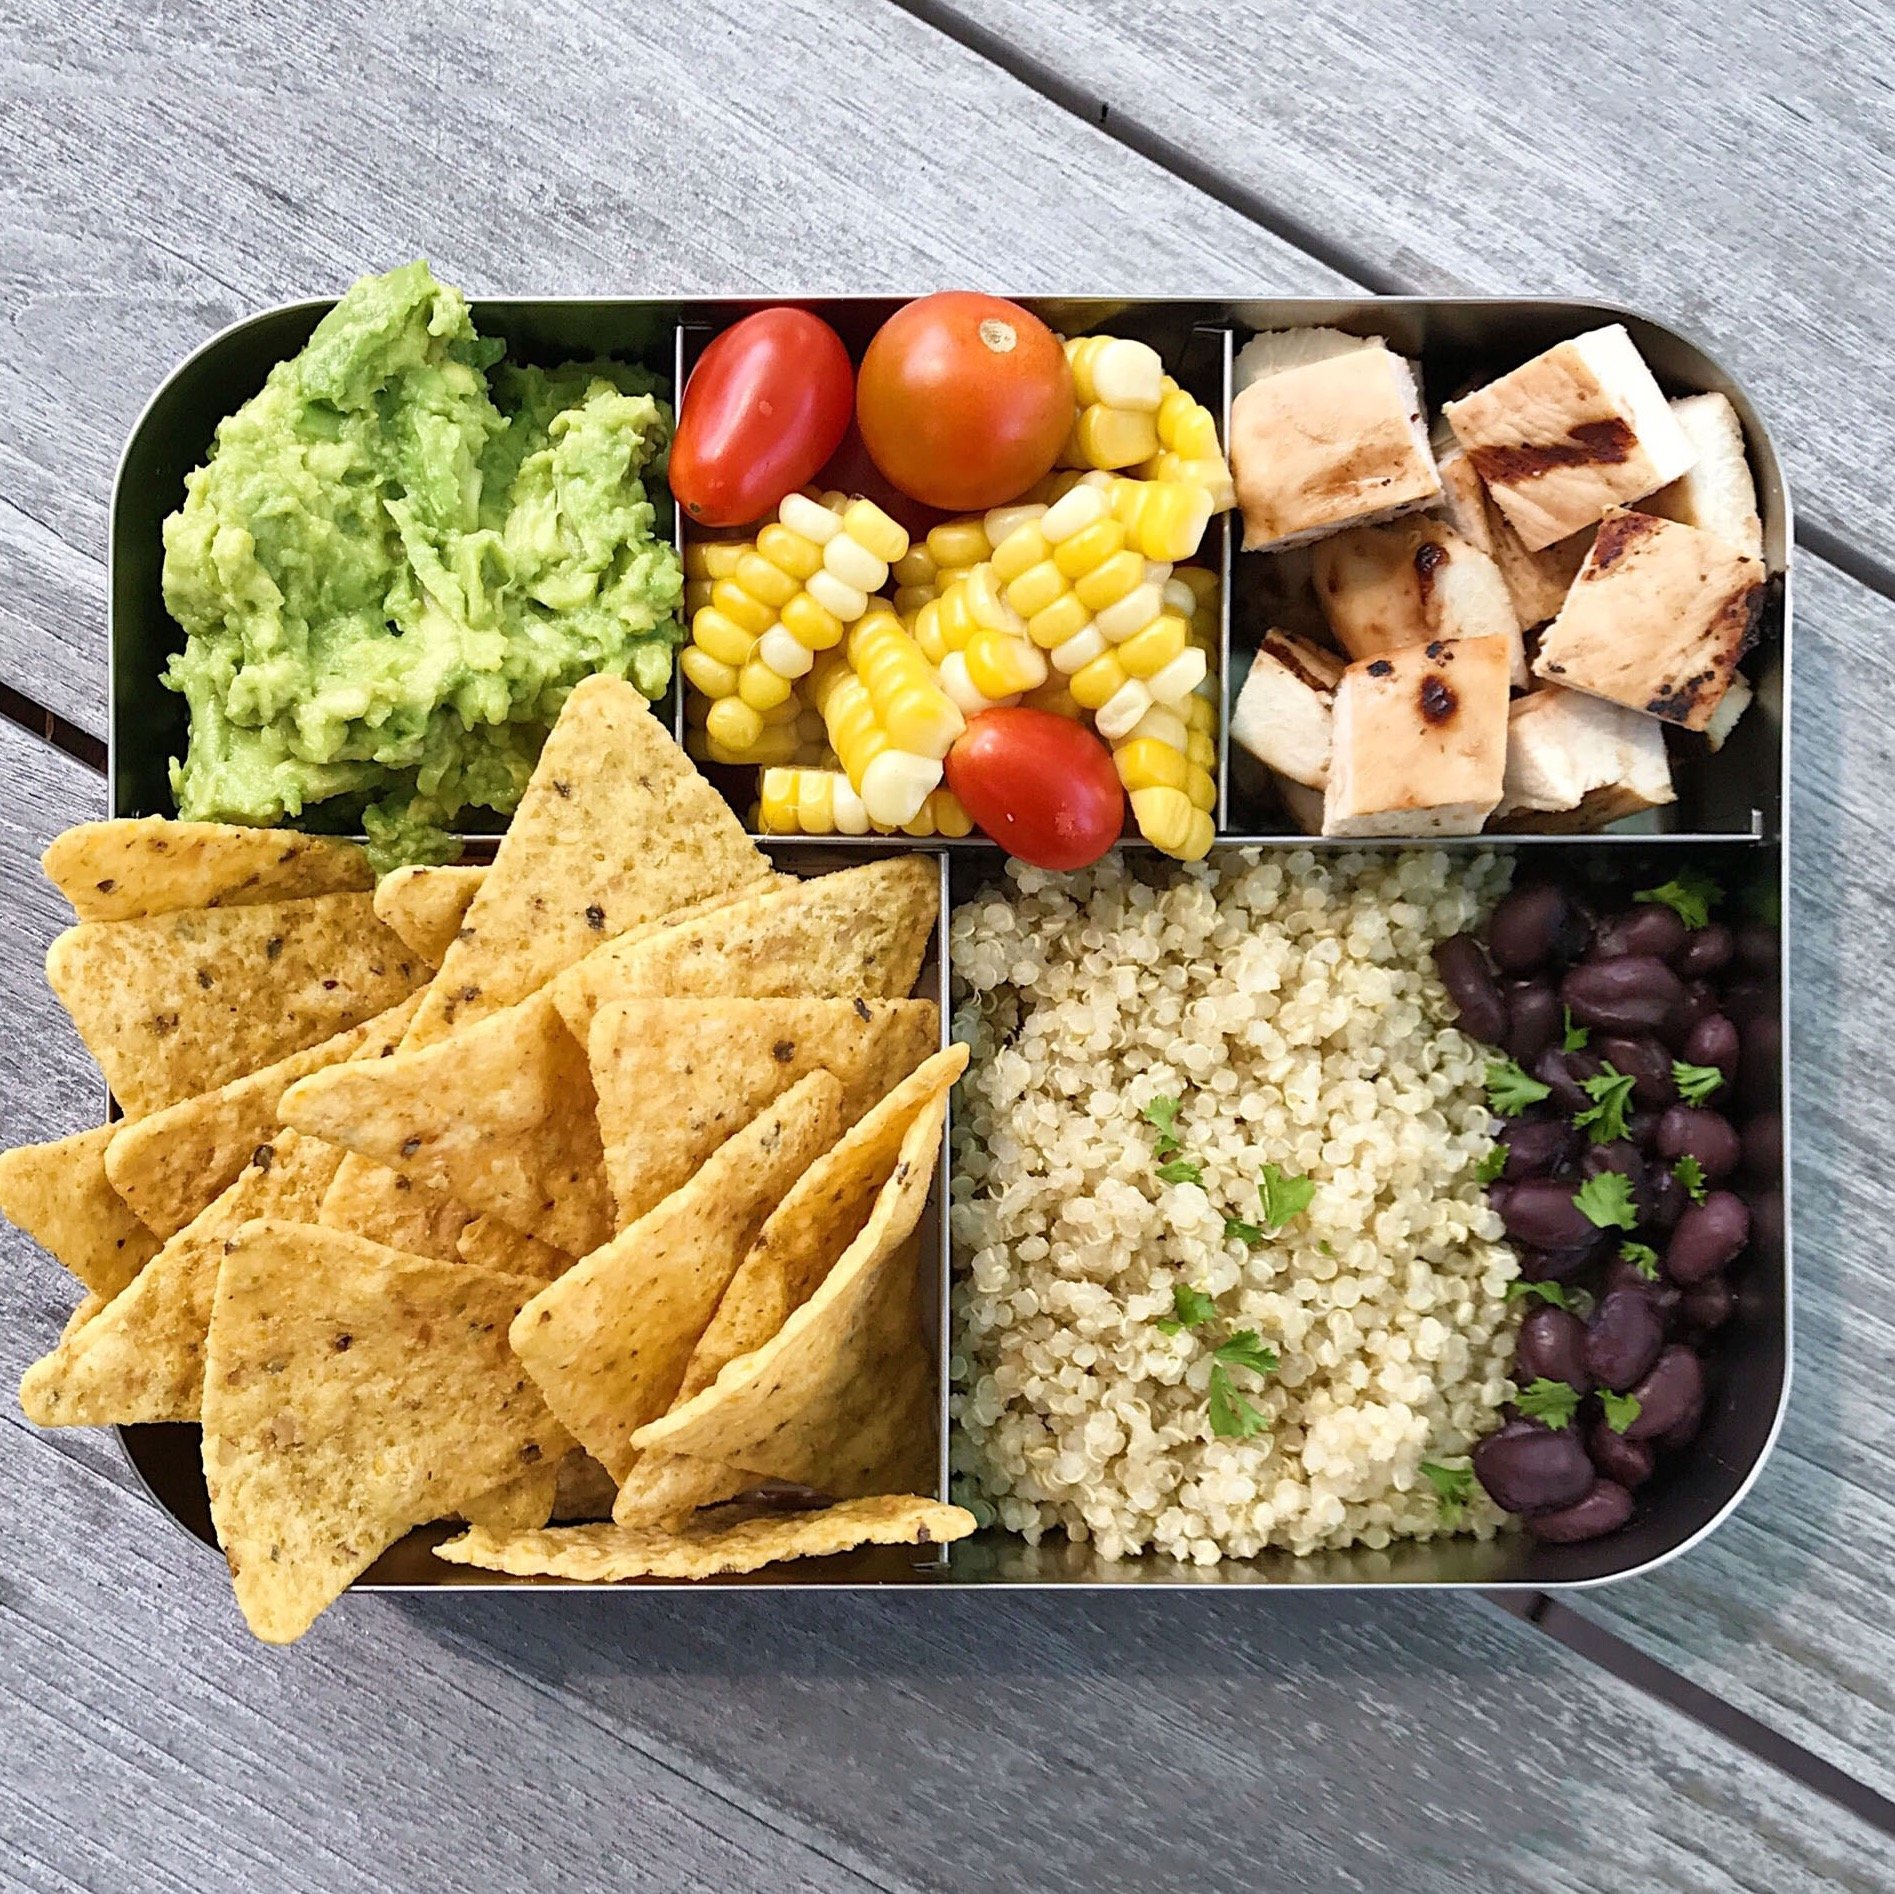 gluten free lunchbox ideas #glutenfree #glutenfreerecipes www.healthgffamily.com